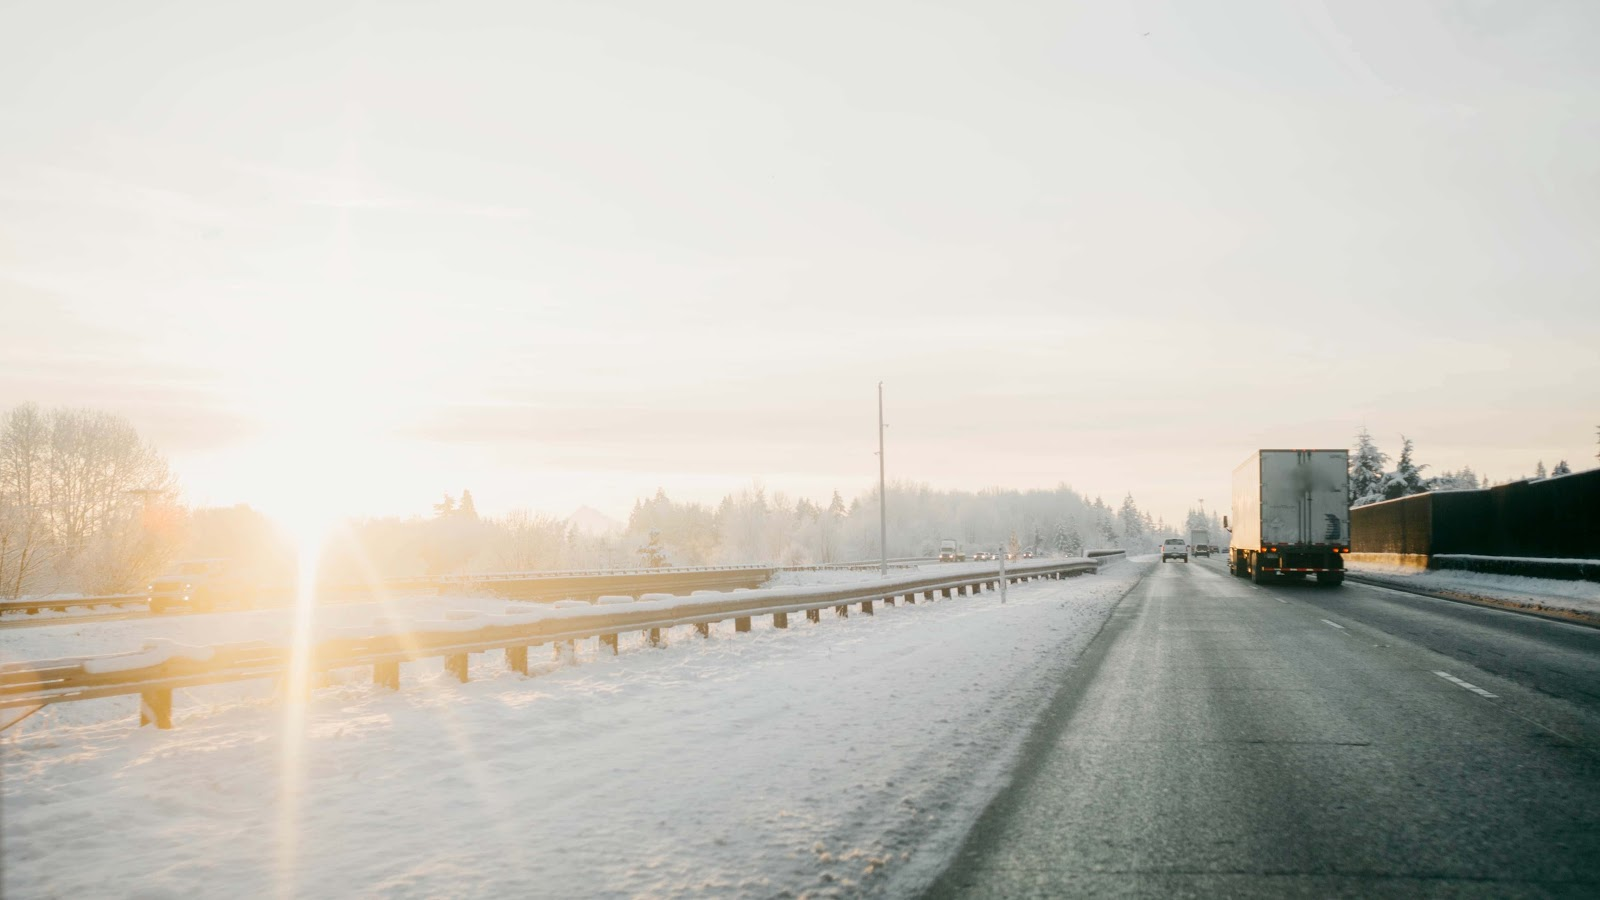 semi-truck driving on highway during winter